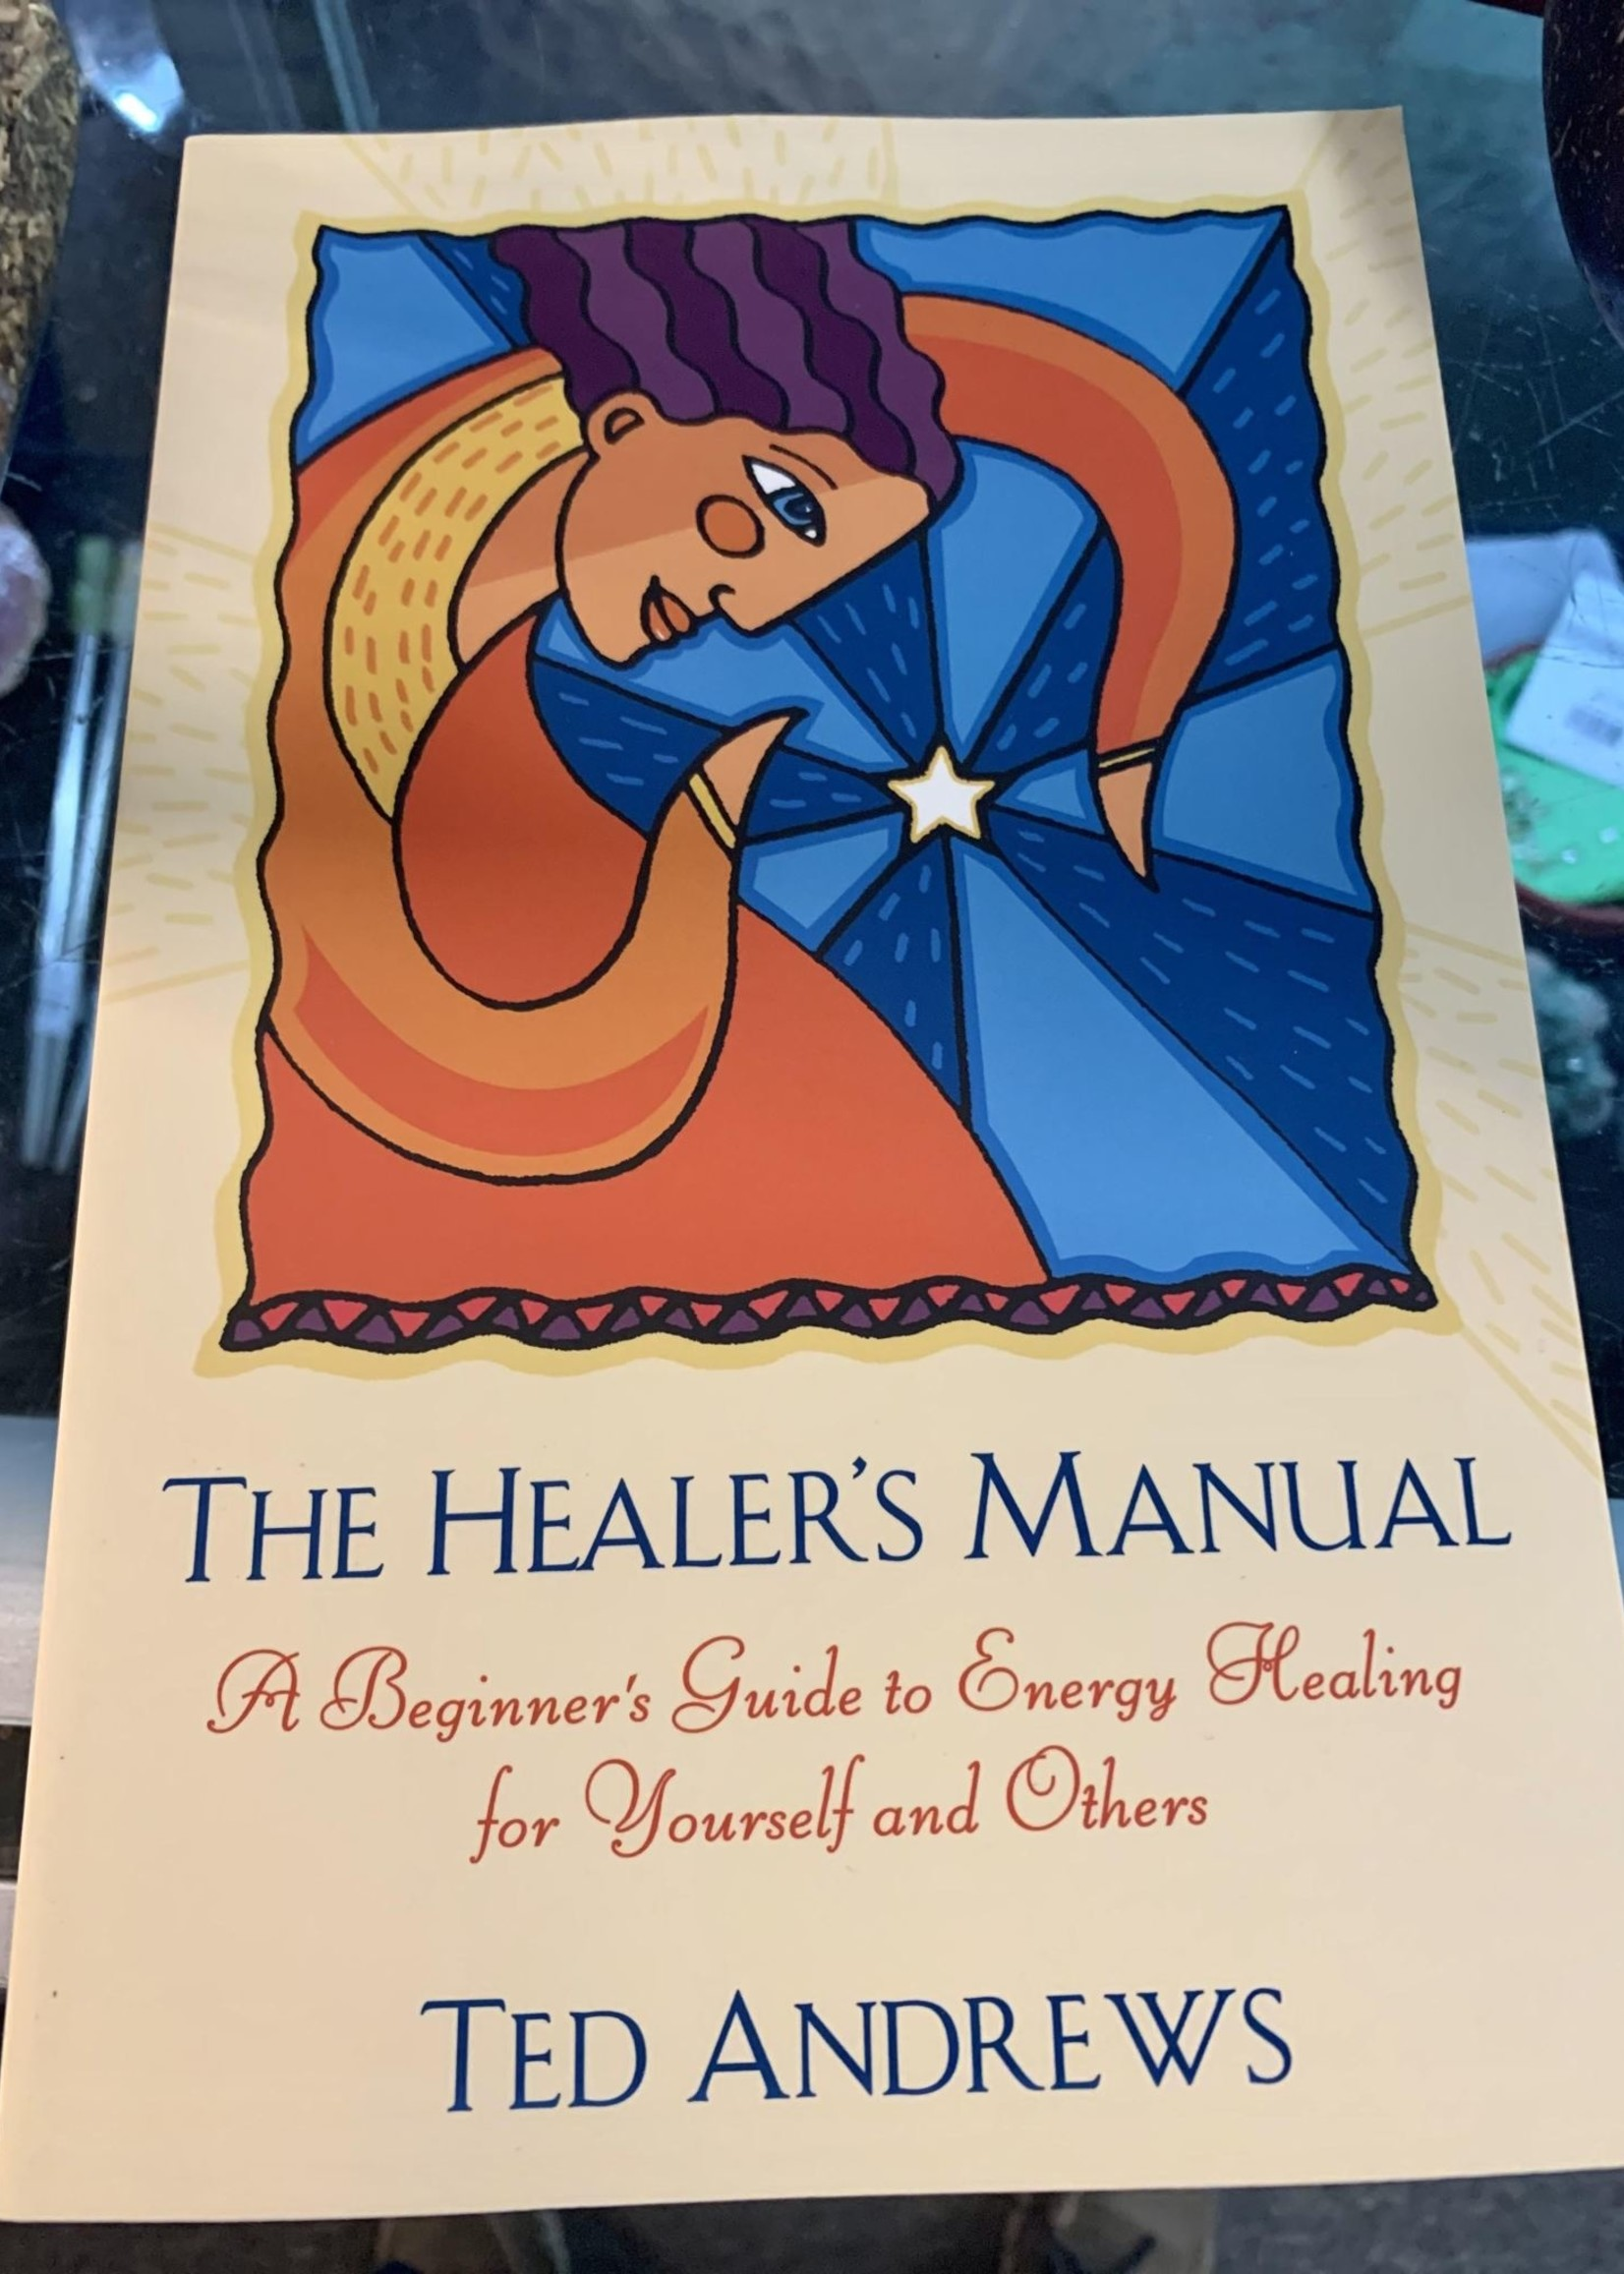 The Healer's Manual -  BY TED ANDREWS